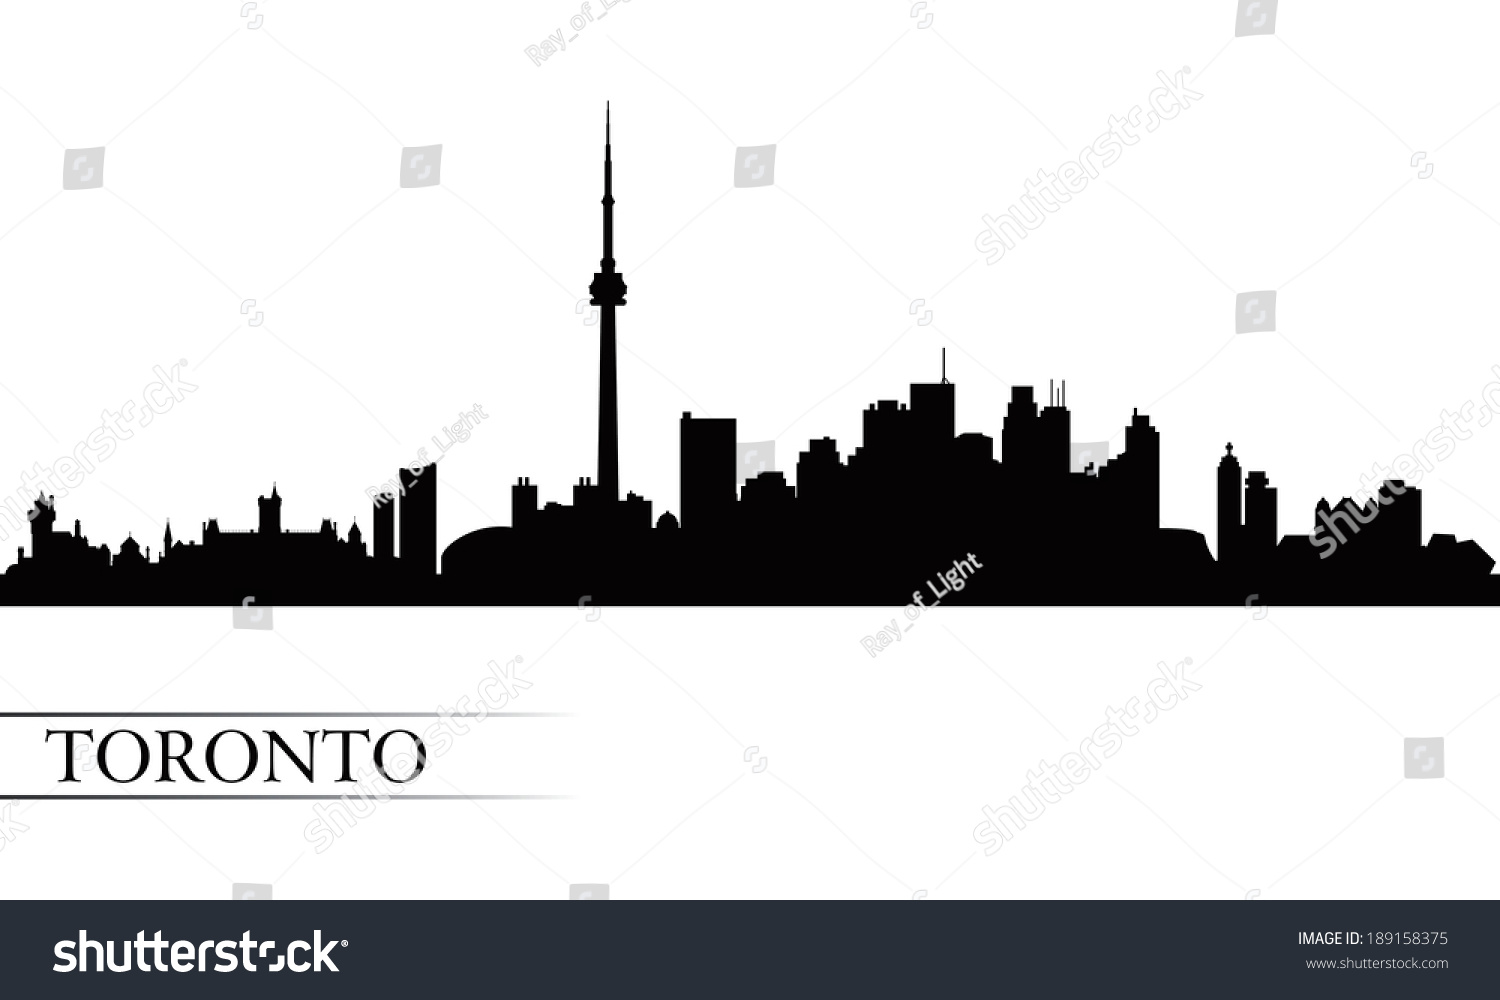 Royalty free toronto city skyline silhouette 189158375 stock photo toronto city skyline silhouette background vector illustration 189158375 thecheapjerseys Image collections